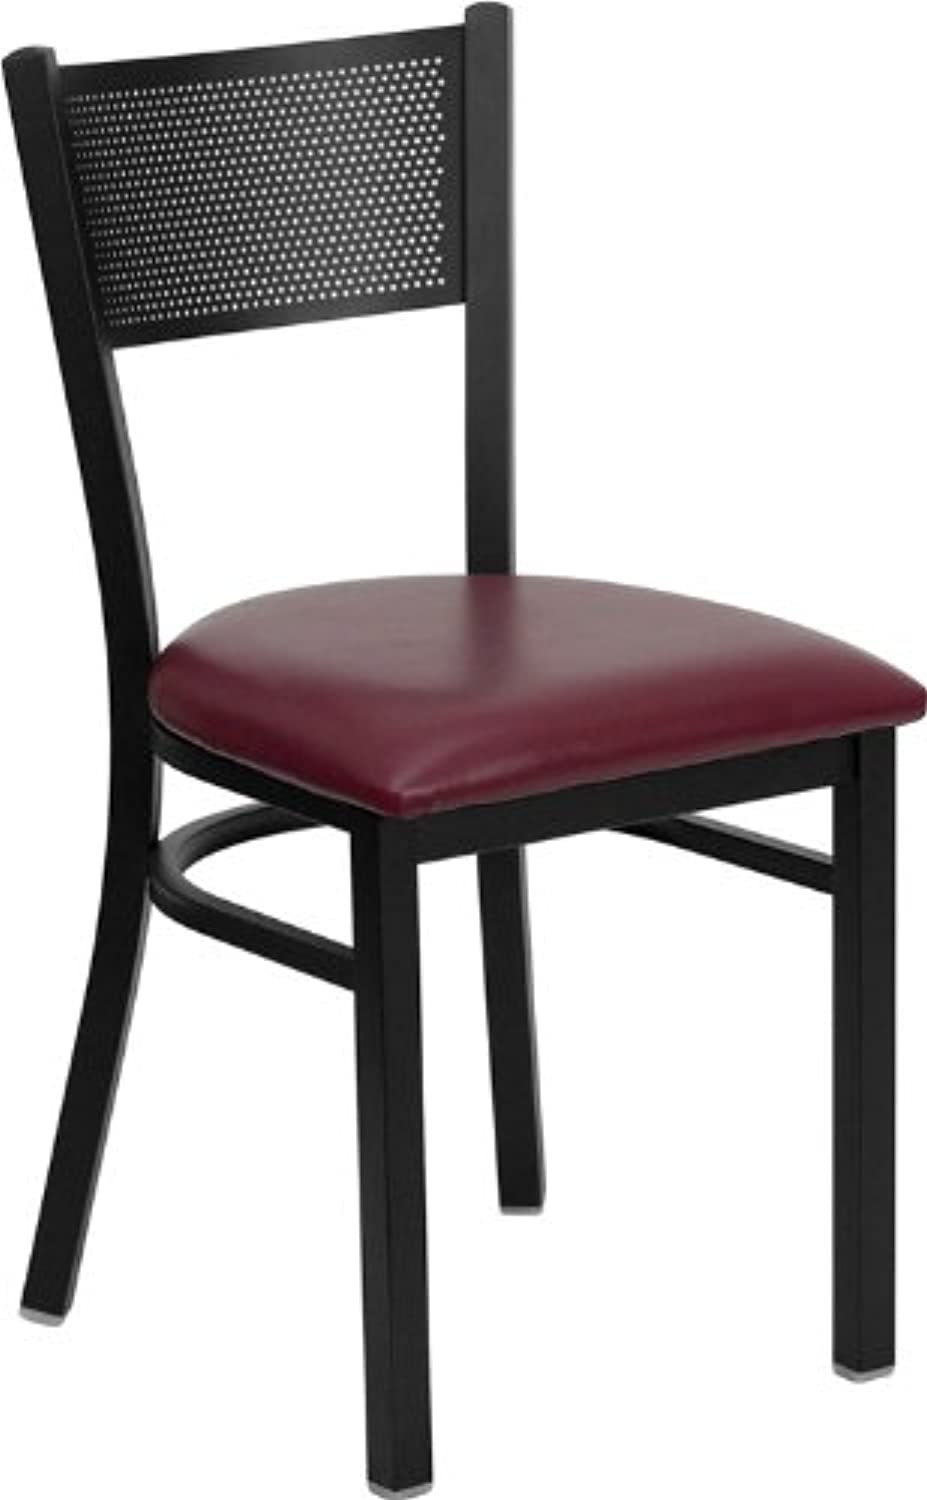 Flash Furniture HERCULES Series Black Grid Back Metal Restaurant Chair - Burgundy Vinyl Seat